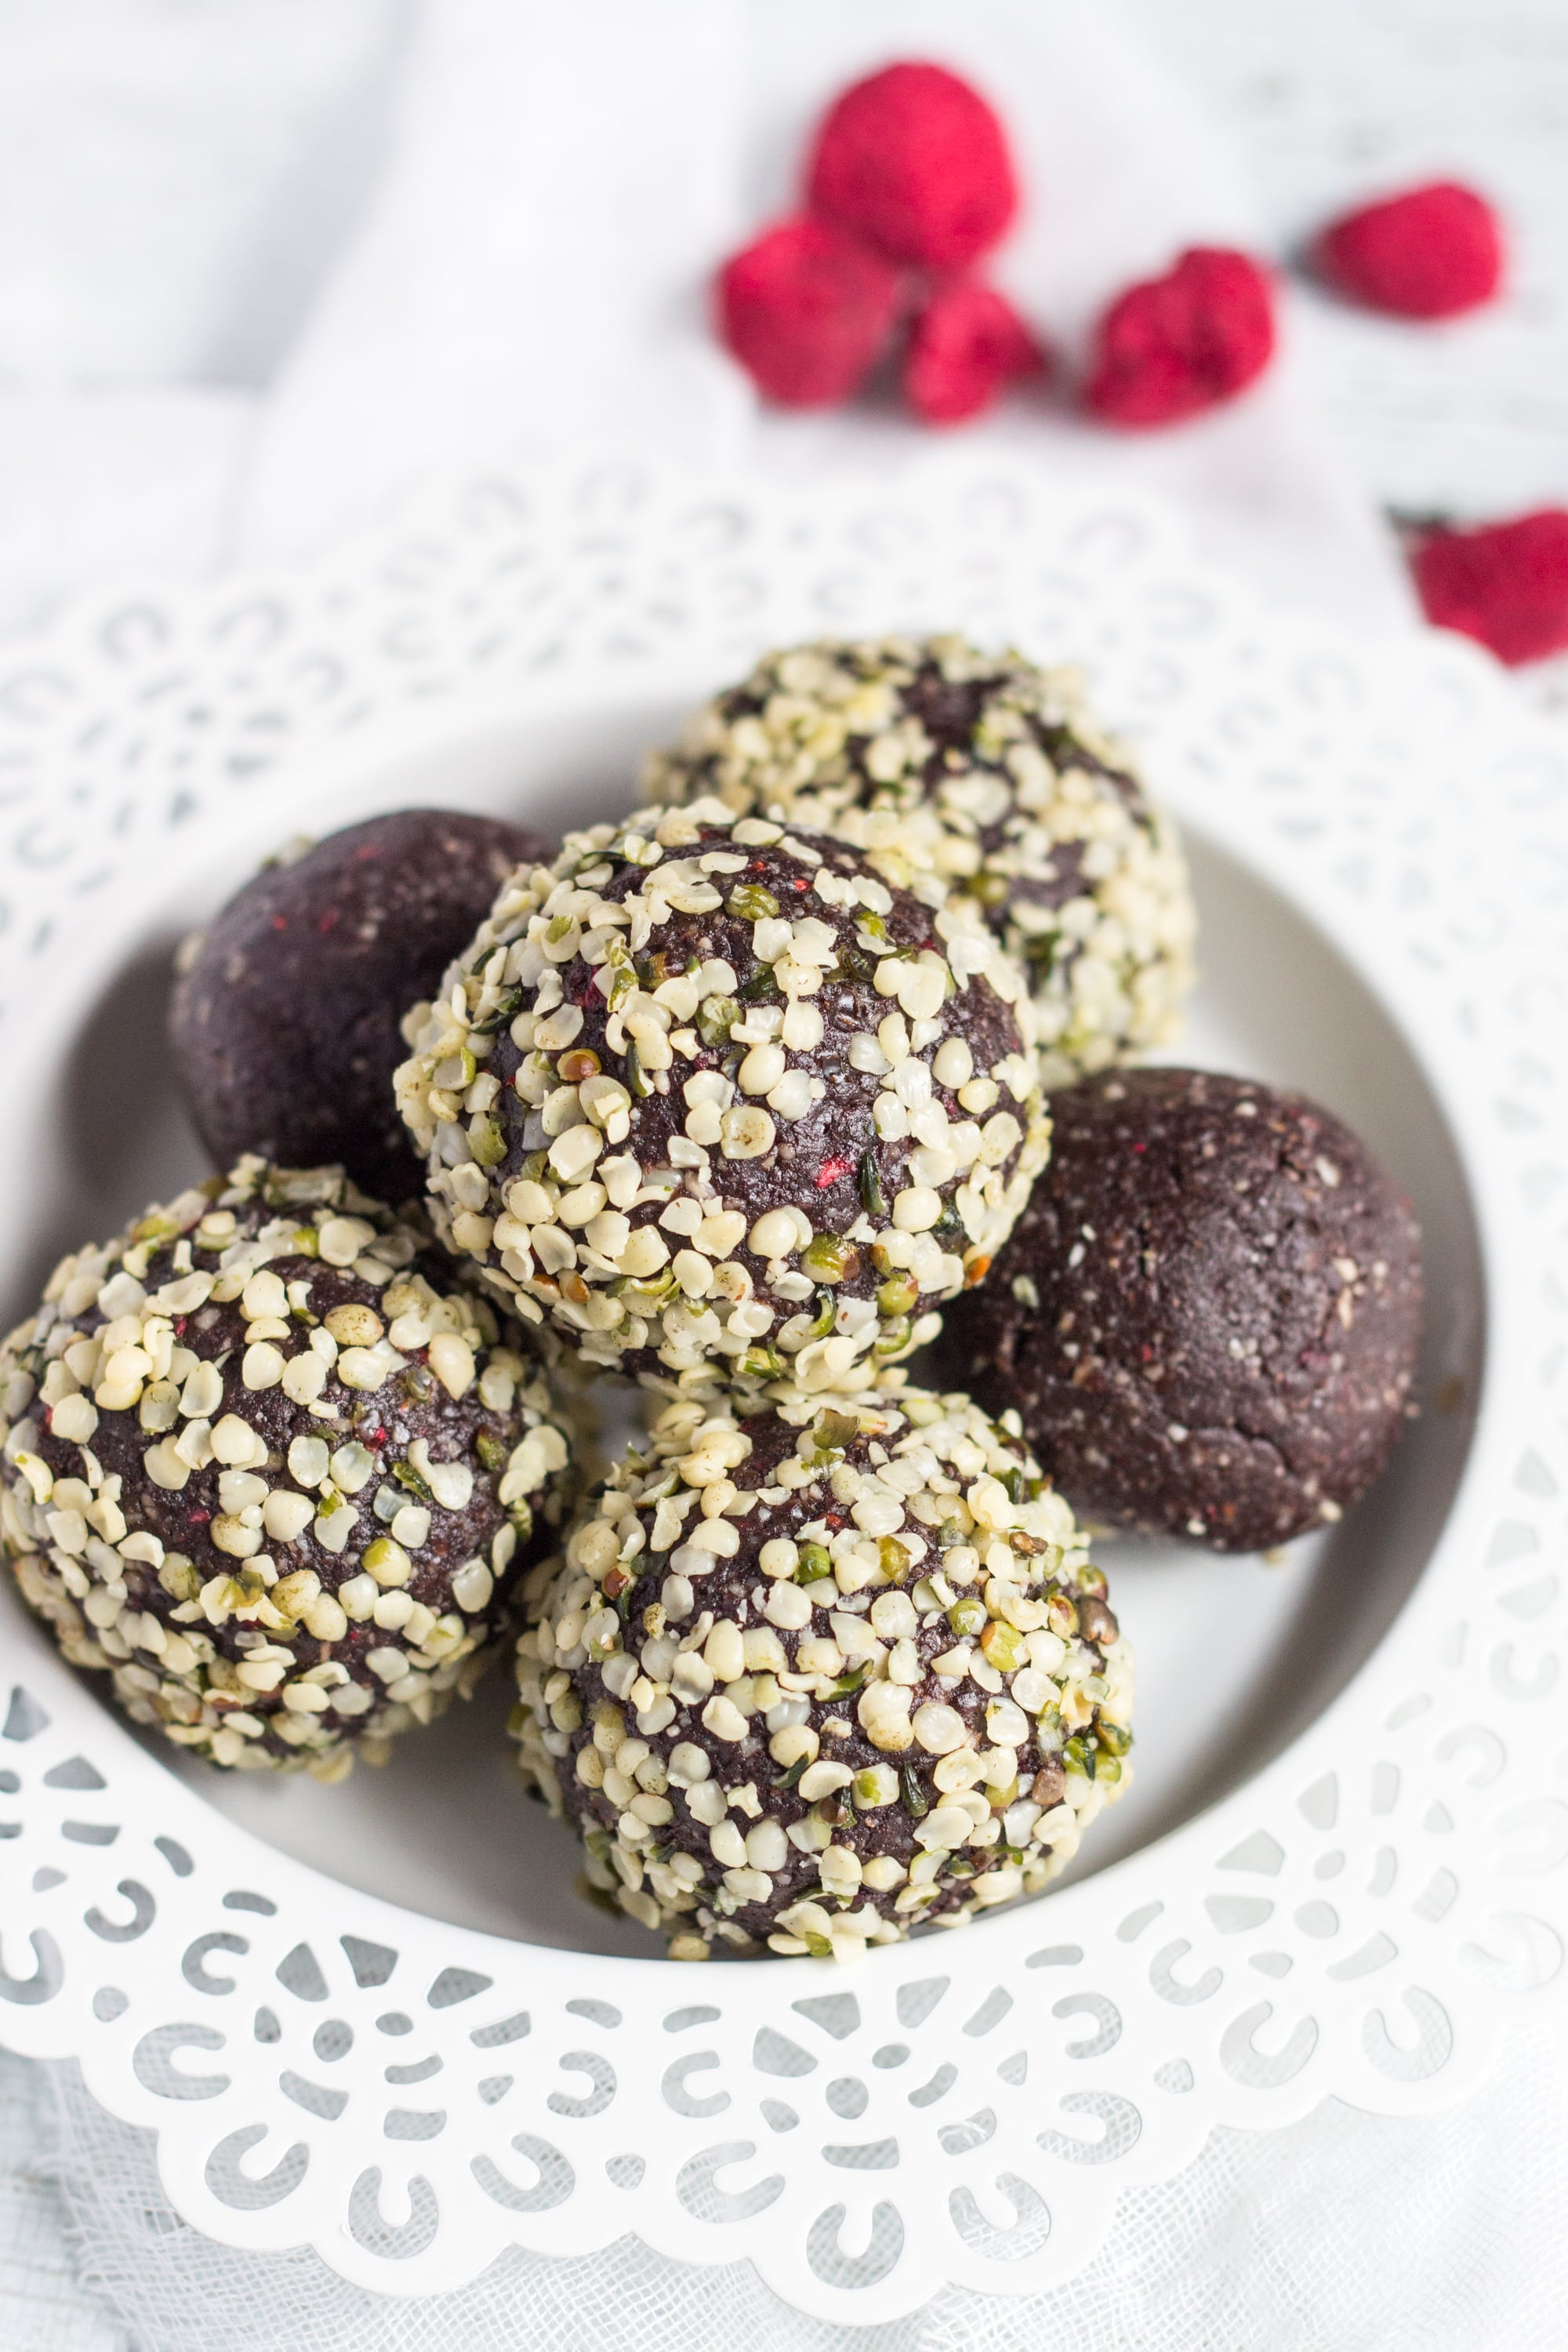 Nut Free Raspberry Bliss Balls. Dense, fudgy & great for tucking into kids lunchboxes. An easy way to increase protein in the diets of picky eaters.